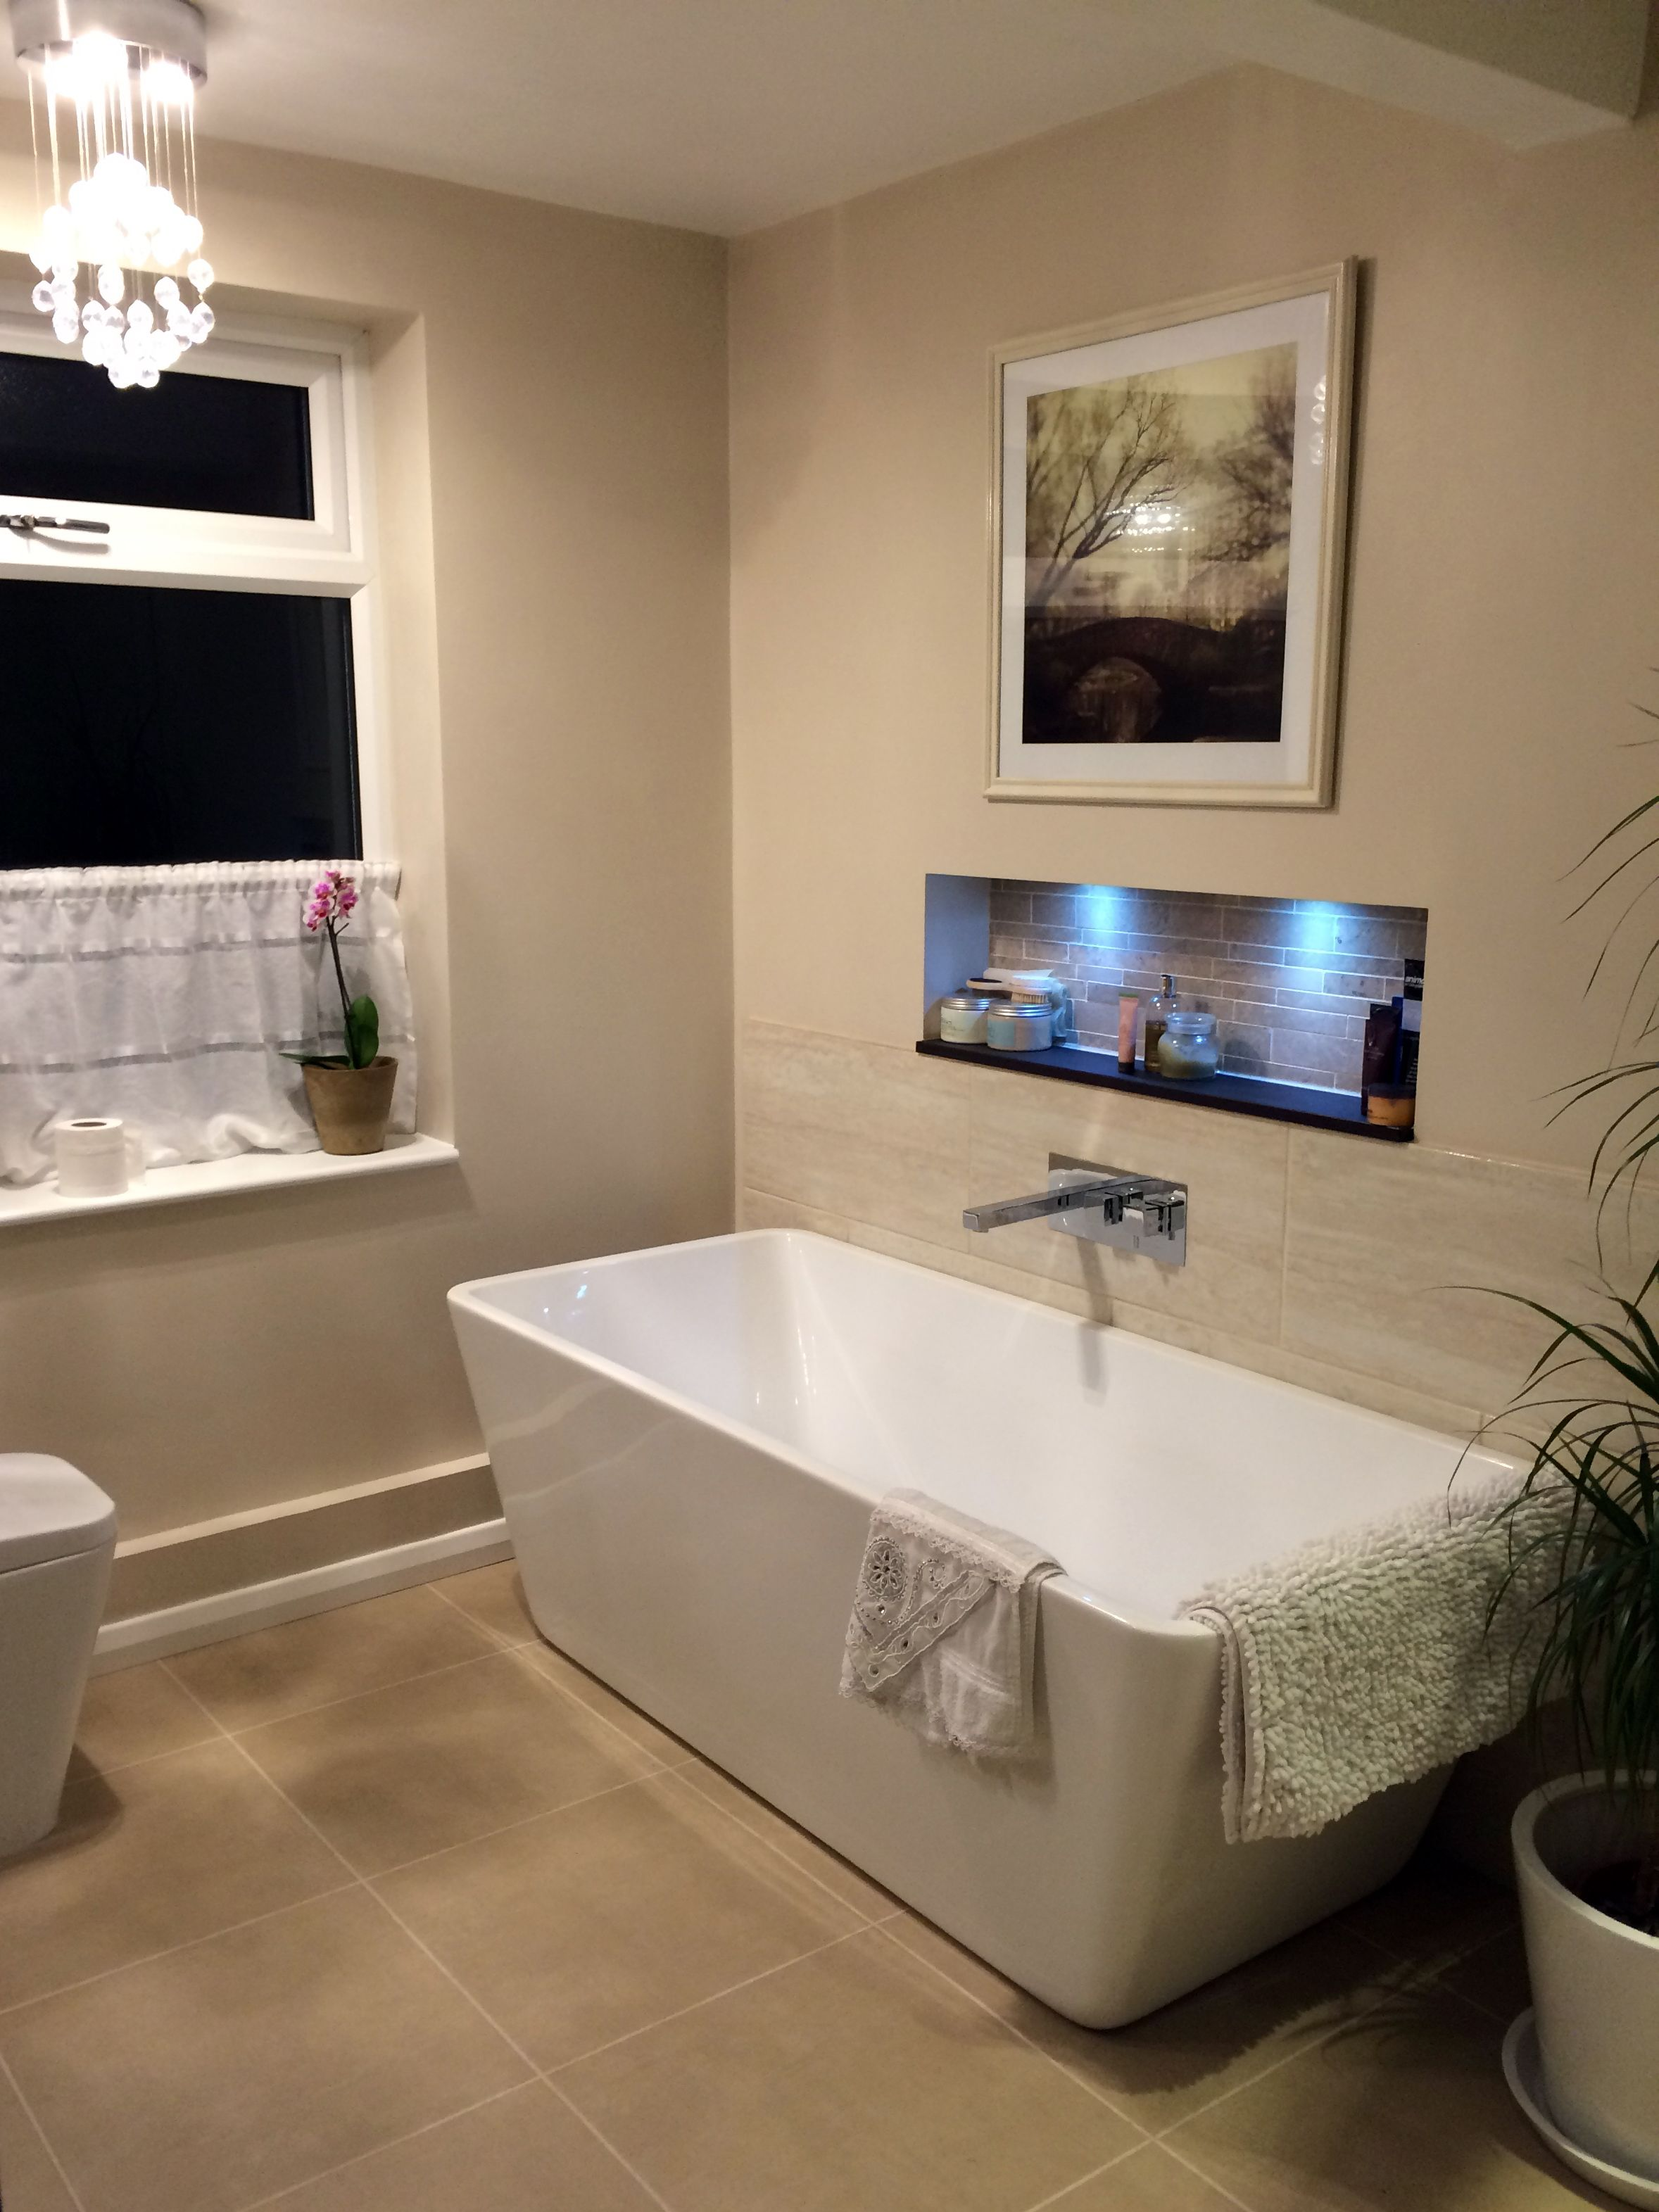 Freestanding bath, waterfall tap, recessed shelf alcove with LED ...